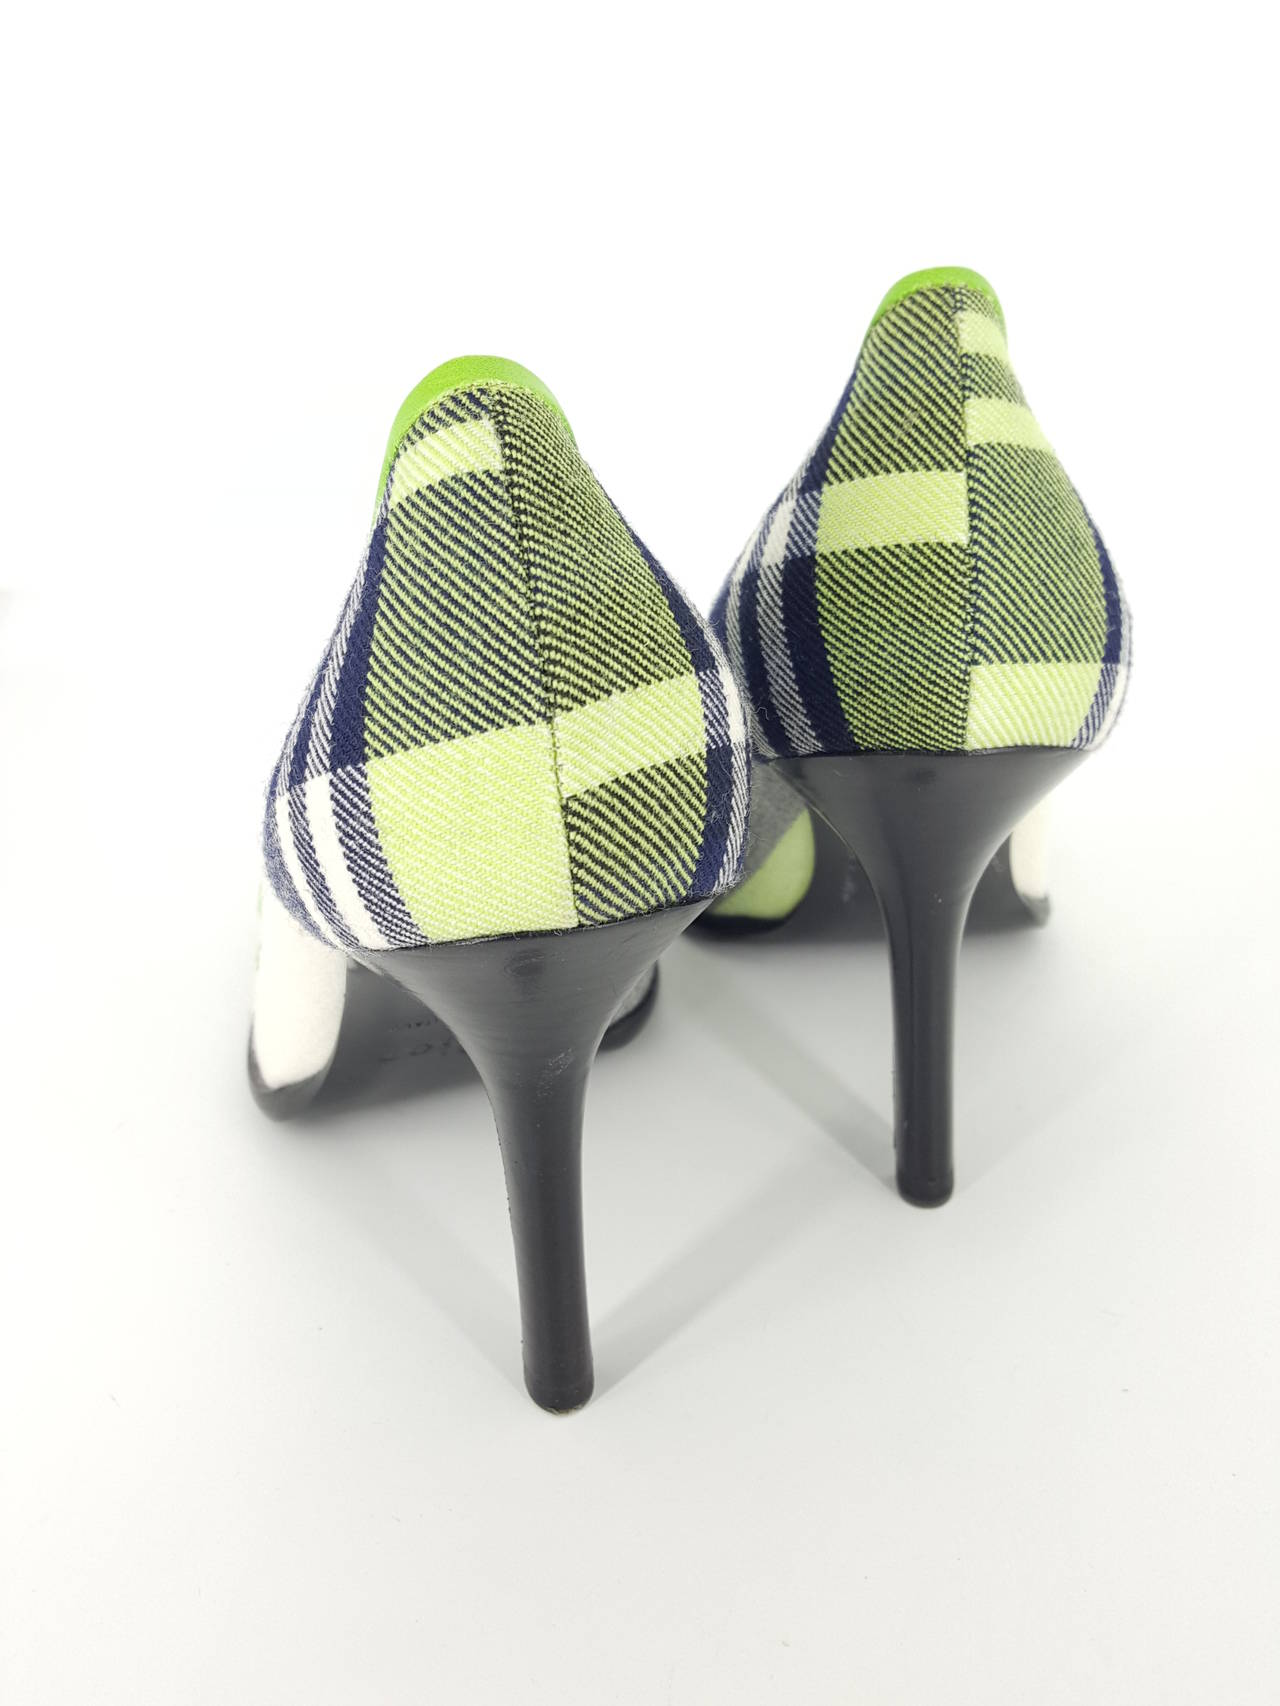 Green Christian Dior Vibrant Plaid Flannel Pumps in size 36 1/2 For Sale